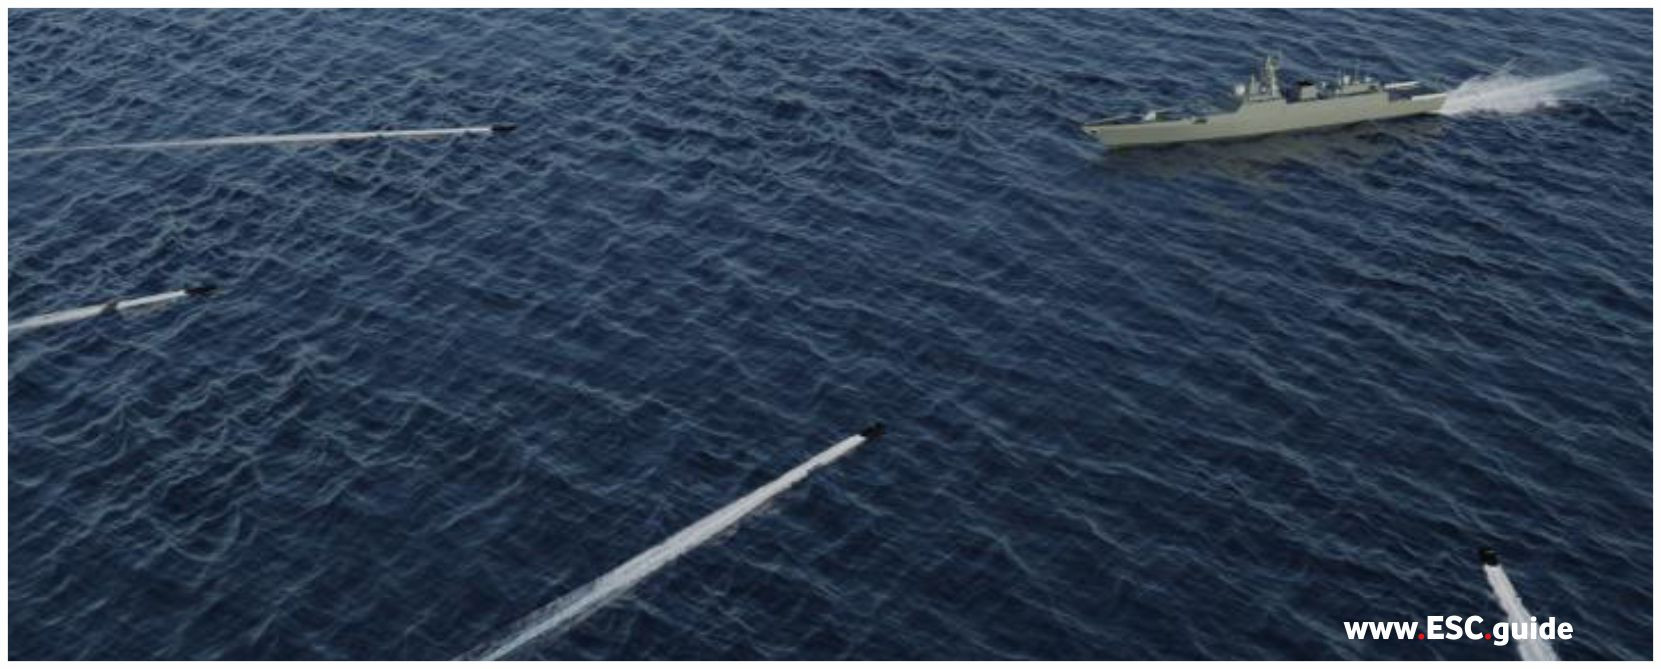 Many MANTAS T38 AIO are on route to the adversarial vessel.